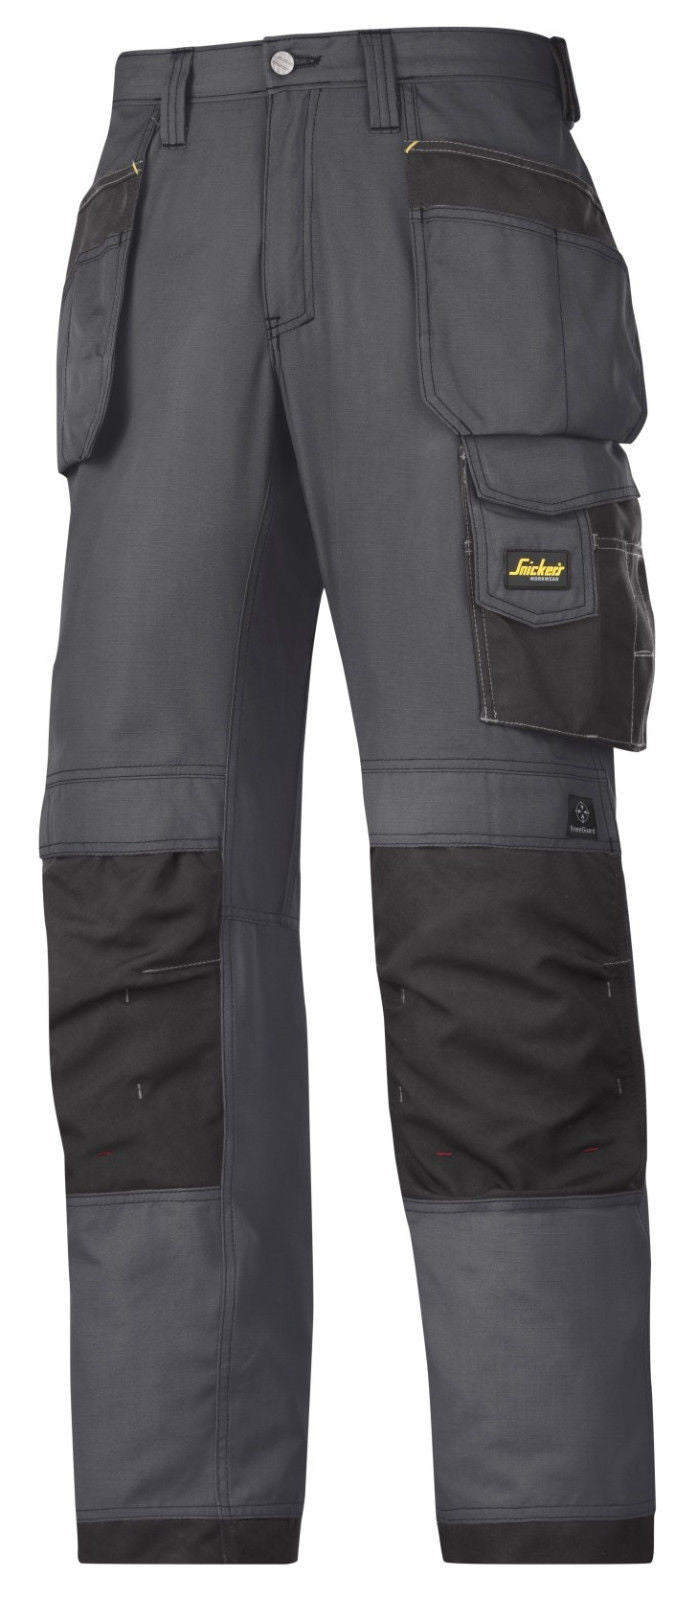 Snickers 3213 Craftsmen Holster Pocket Trousers Rip-Stop Black W35 L37